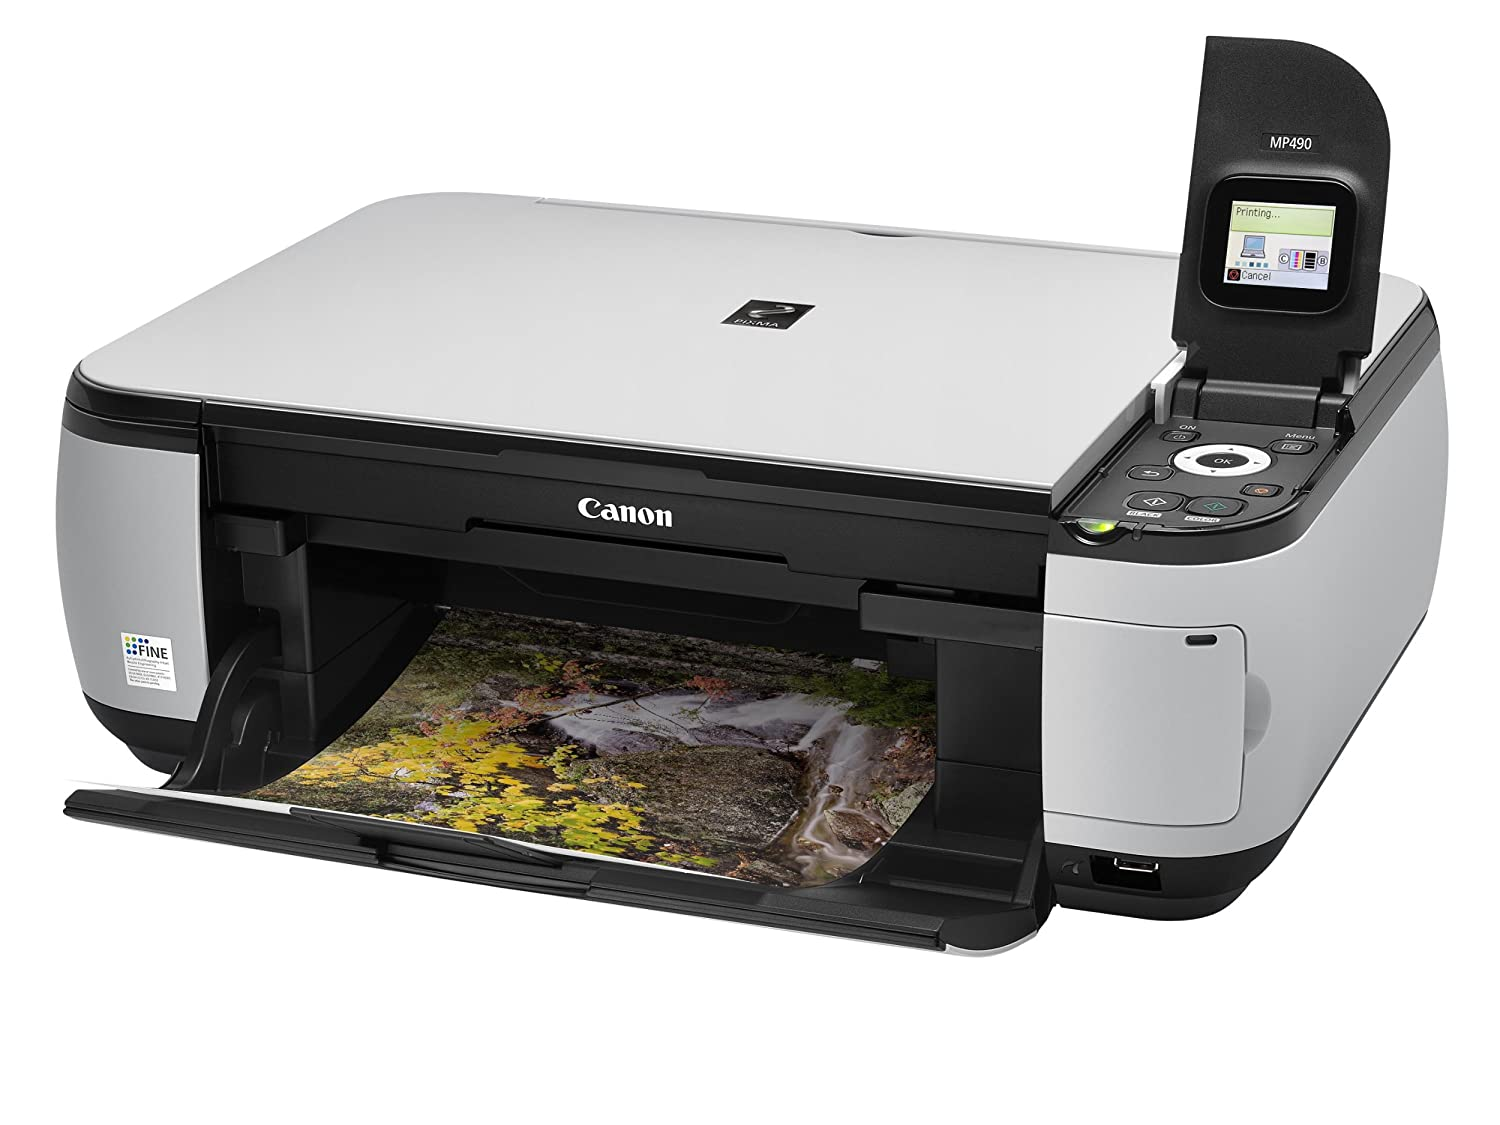 canon pixma mp490 multifunction printer print scan copy amazon rh amazon co uk Canon PIXMA MX320 User Manual Photo All in One Printer PIXMA MP490